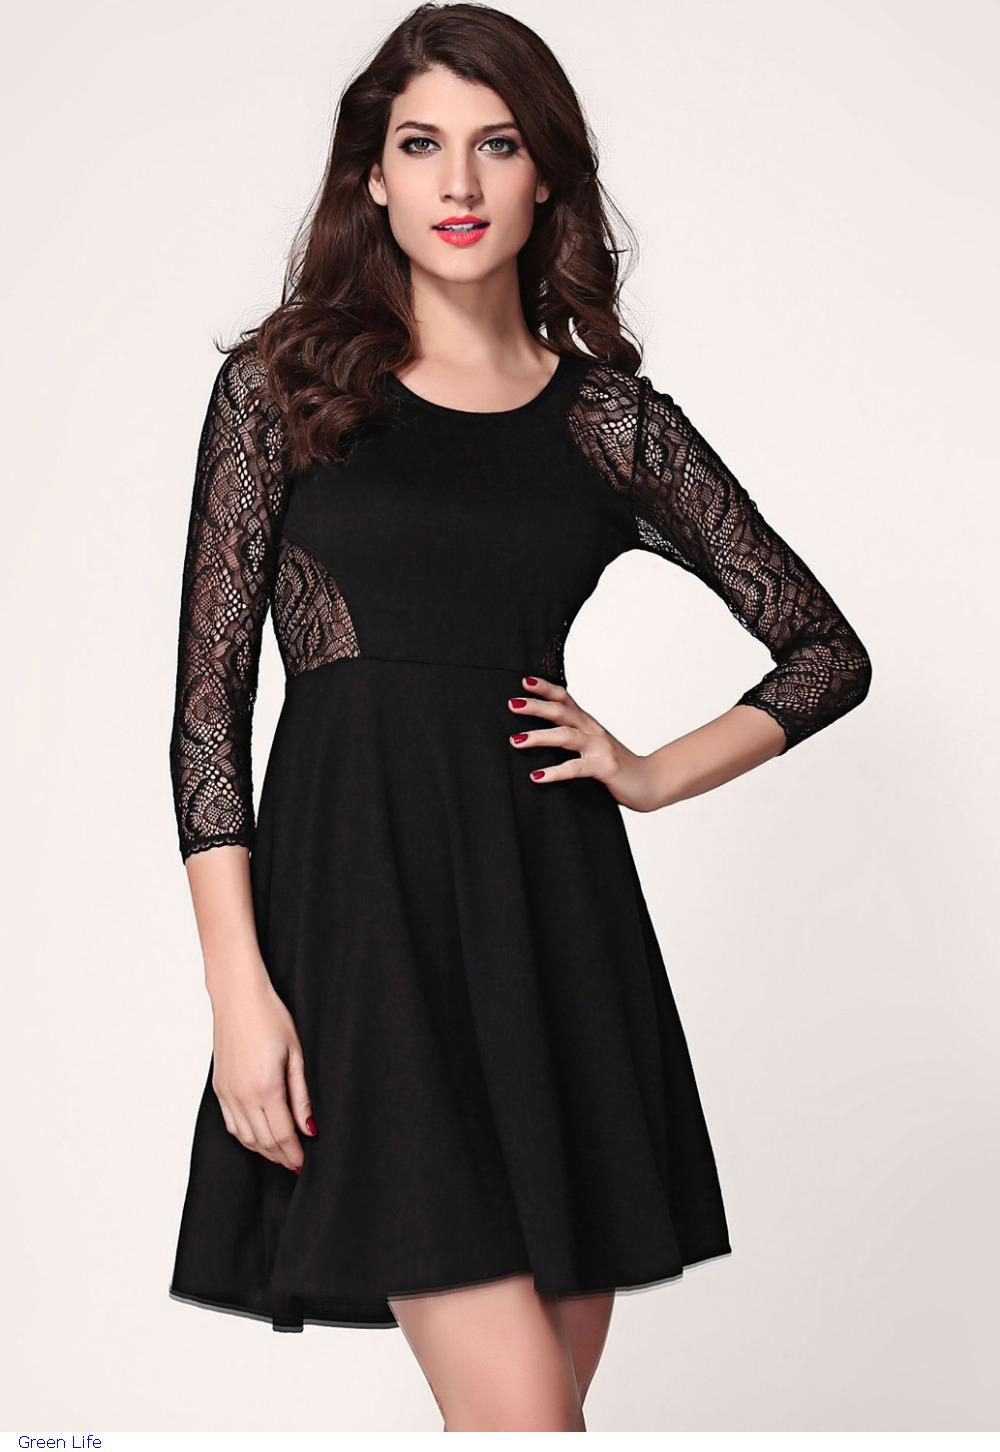 985030bfb5574 2015 Real New Robe Party Dresses Womens Novelty Office Autumn ...